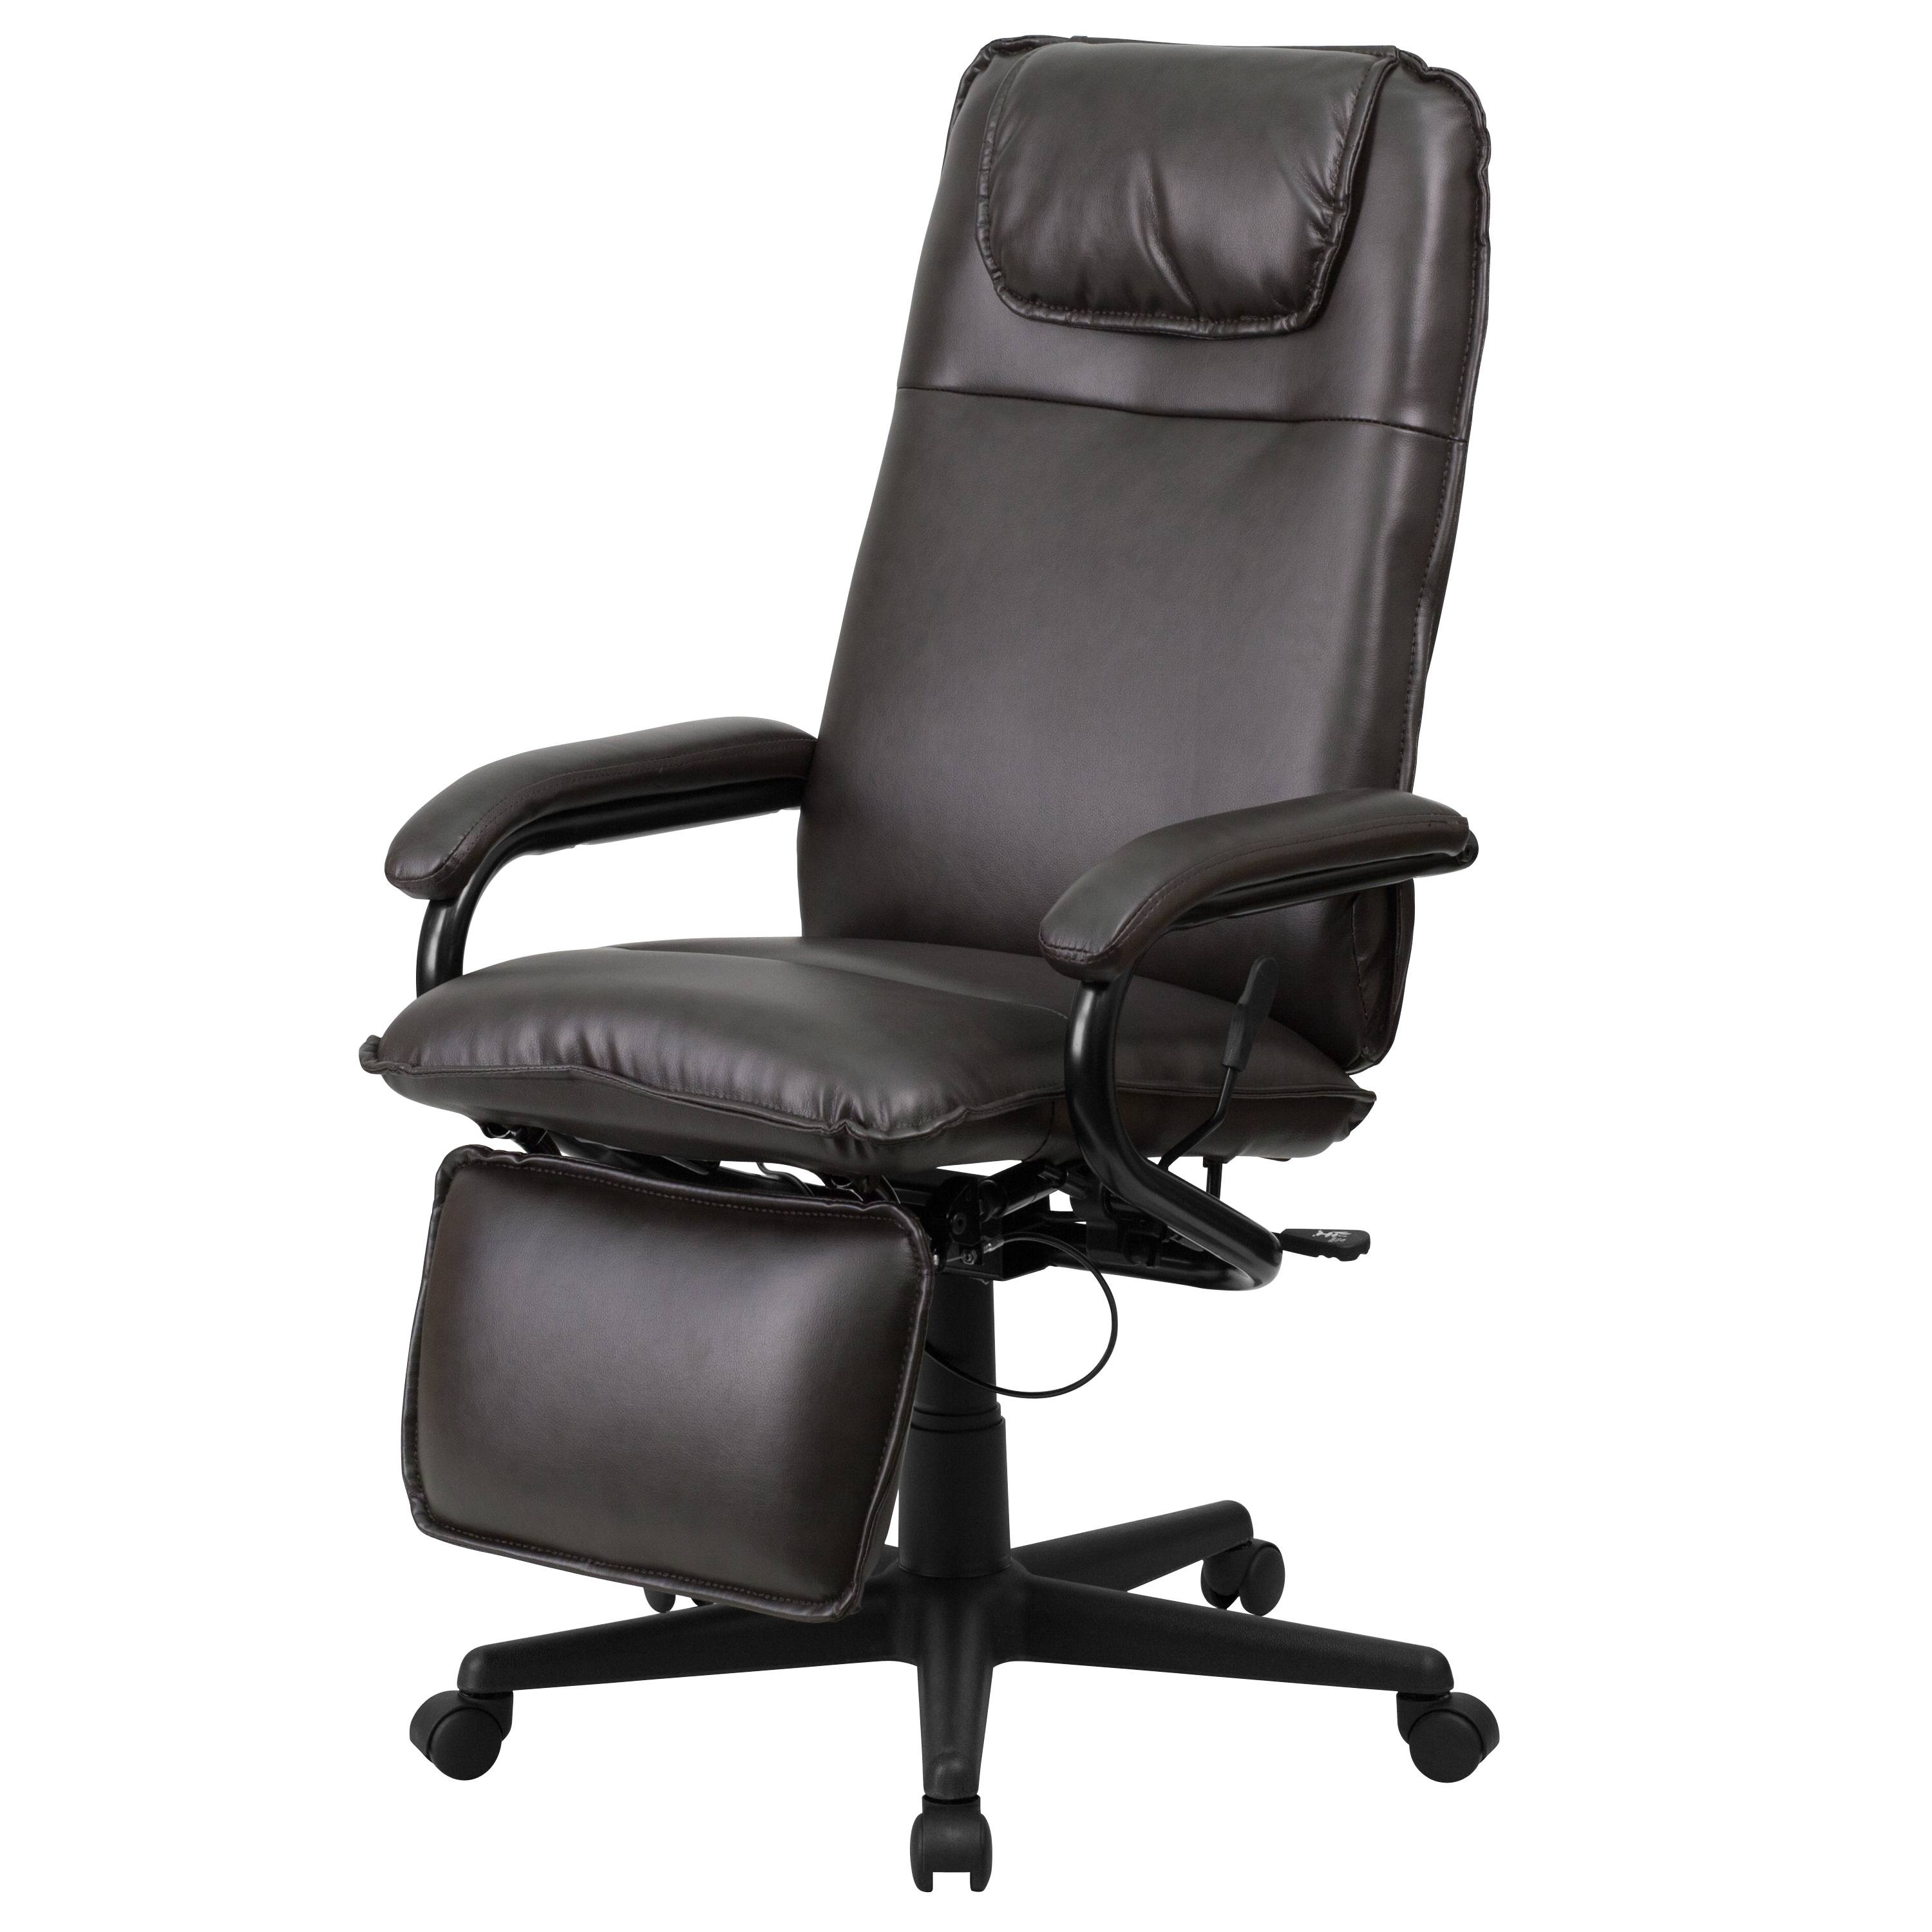 Executive Reclining Office Chairs Pertaining To Recent High Back Leather Executive Reclining Office Chair – Free Shipping (View 6 of 20)